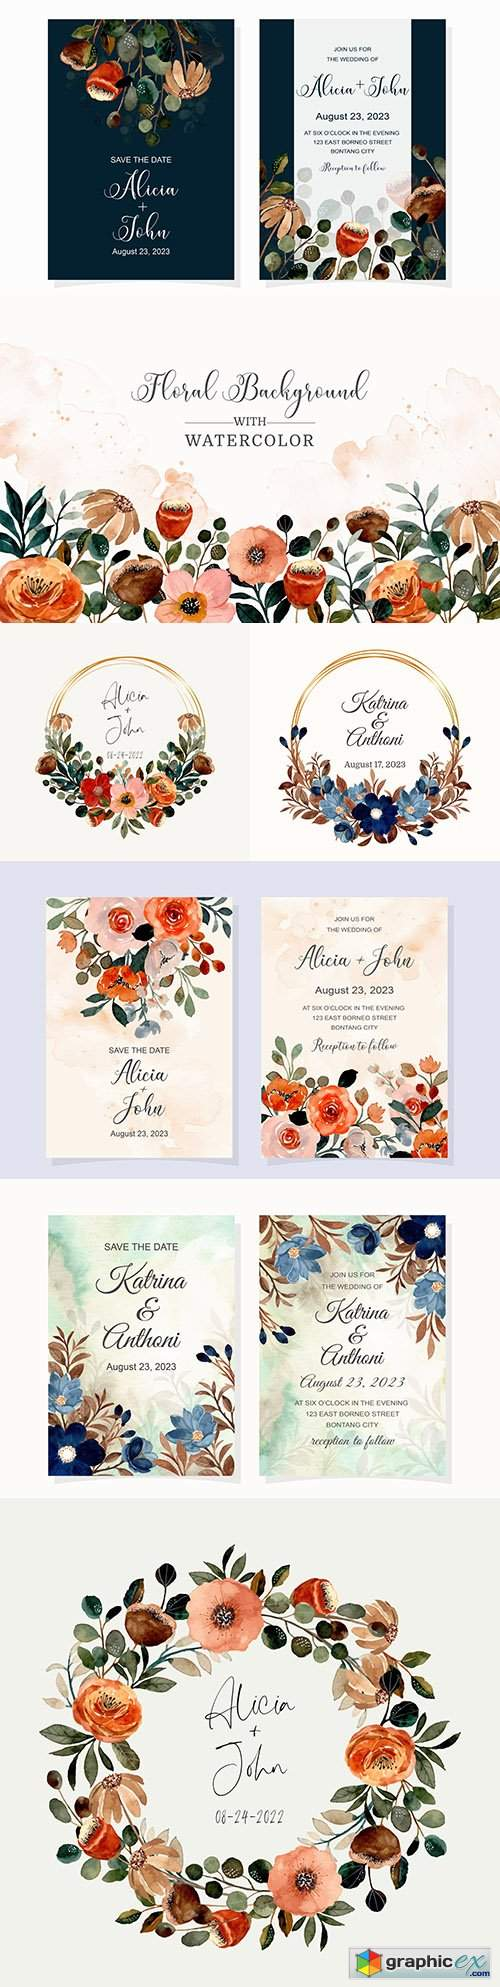 Wedding invitation with blue flower and brown watercolor leaves